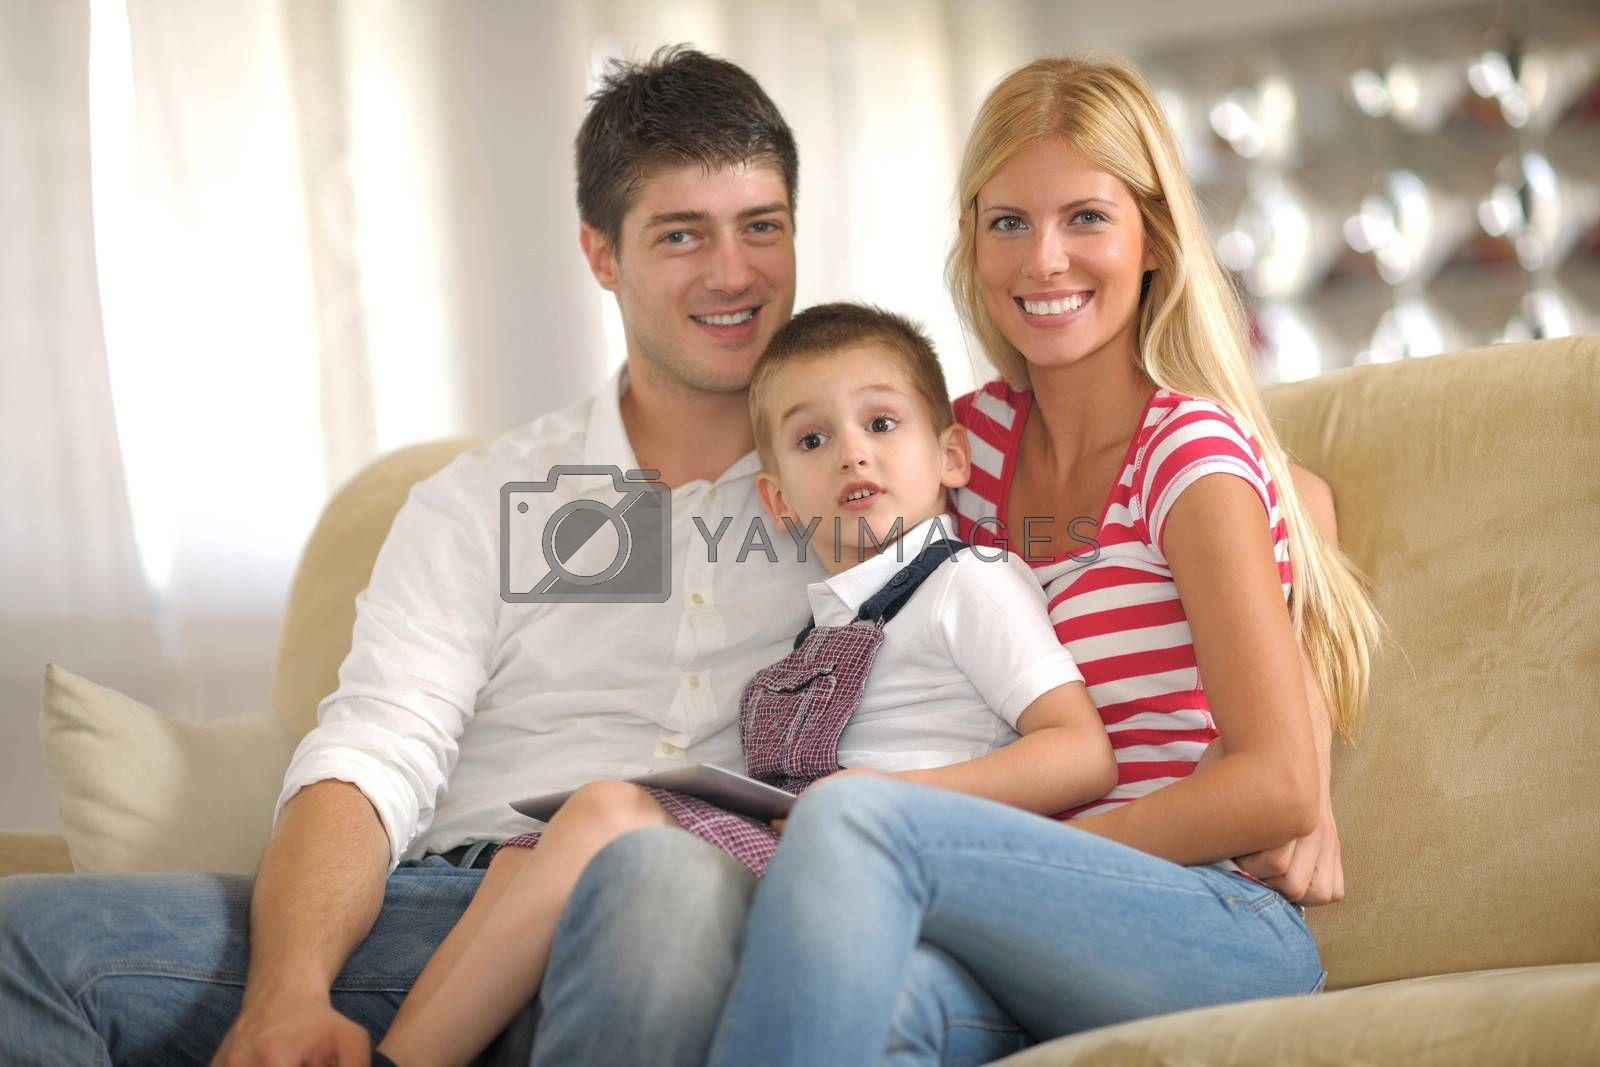 Royalty free image of family at home by .shock